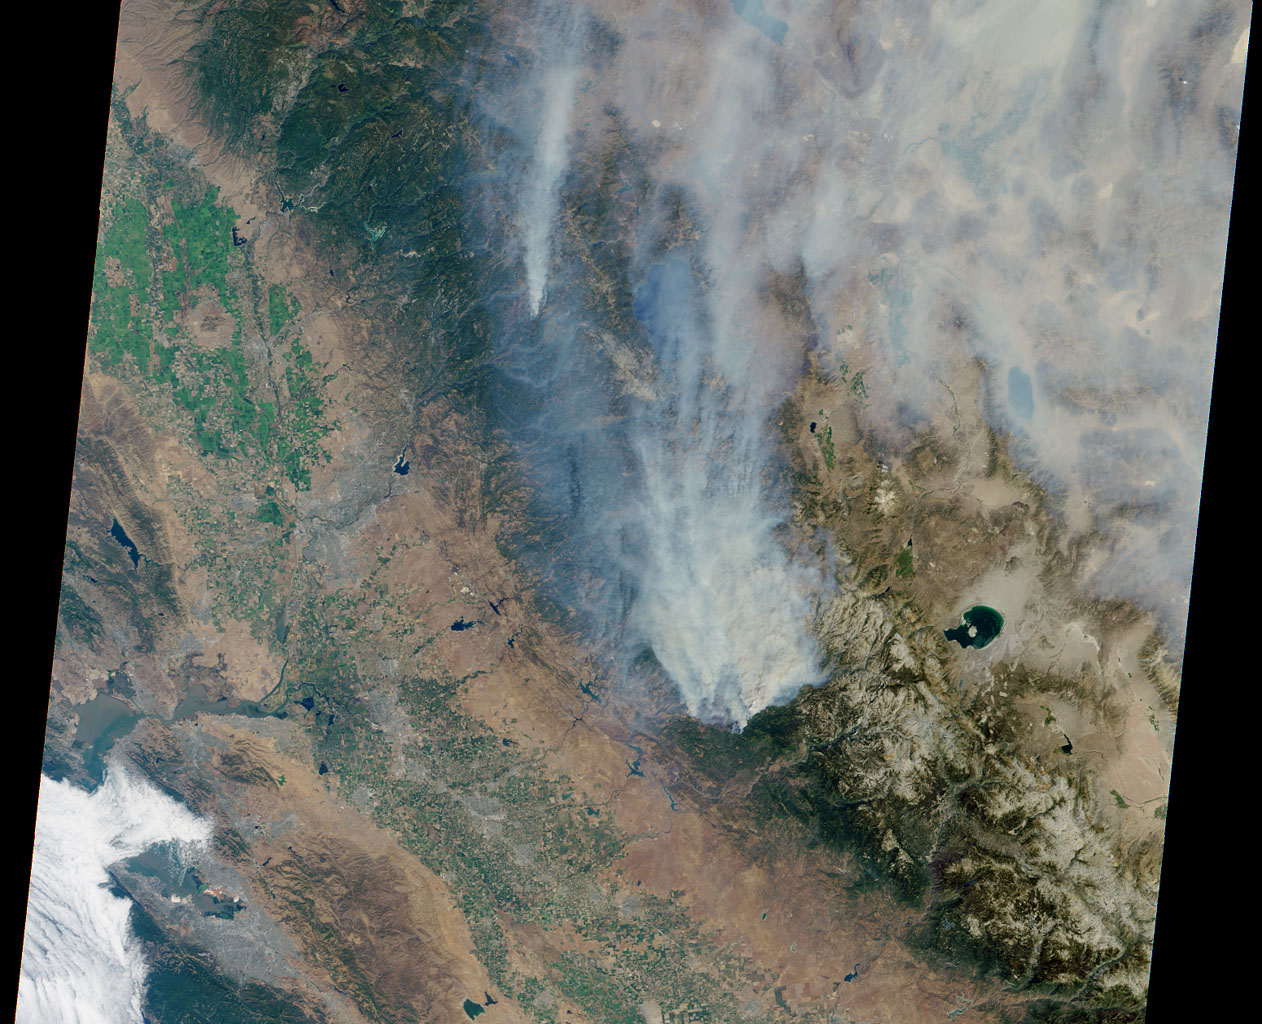 This visible image of California's Rim Fire was acquired Aug. 23, 2013 by the Multi-angle Imaging SpectroRadiometer (MISR) instrument on NASA's Terra spacecraft, showing extensive, brownish smoke.